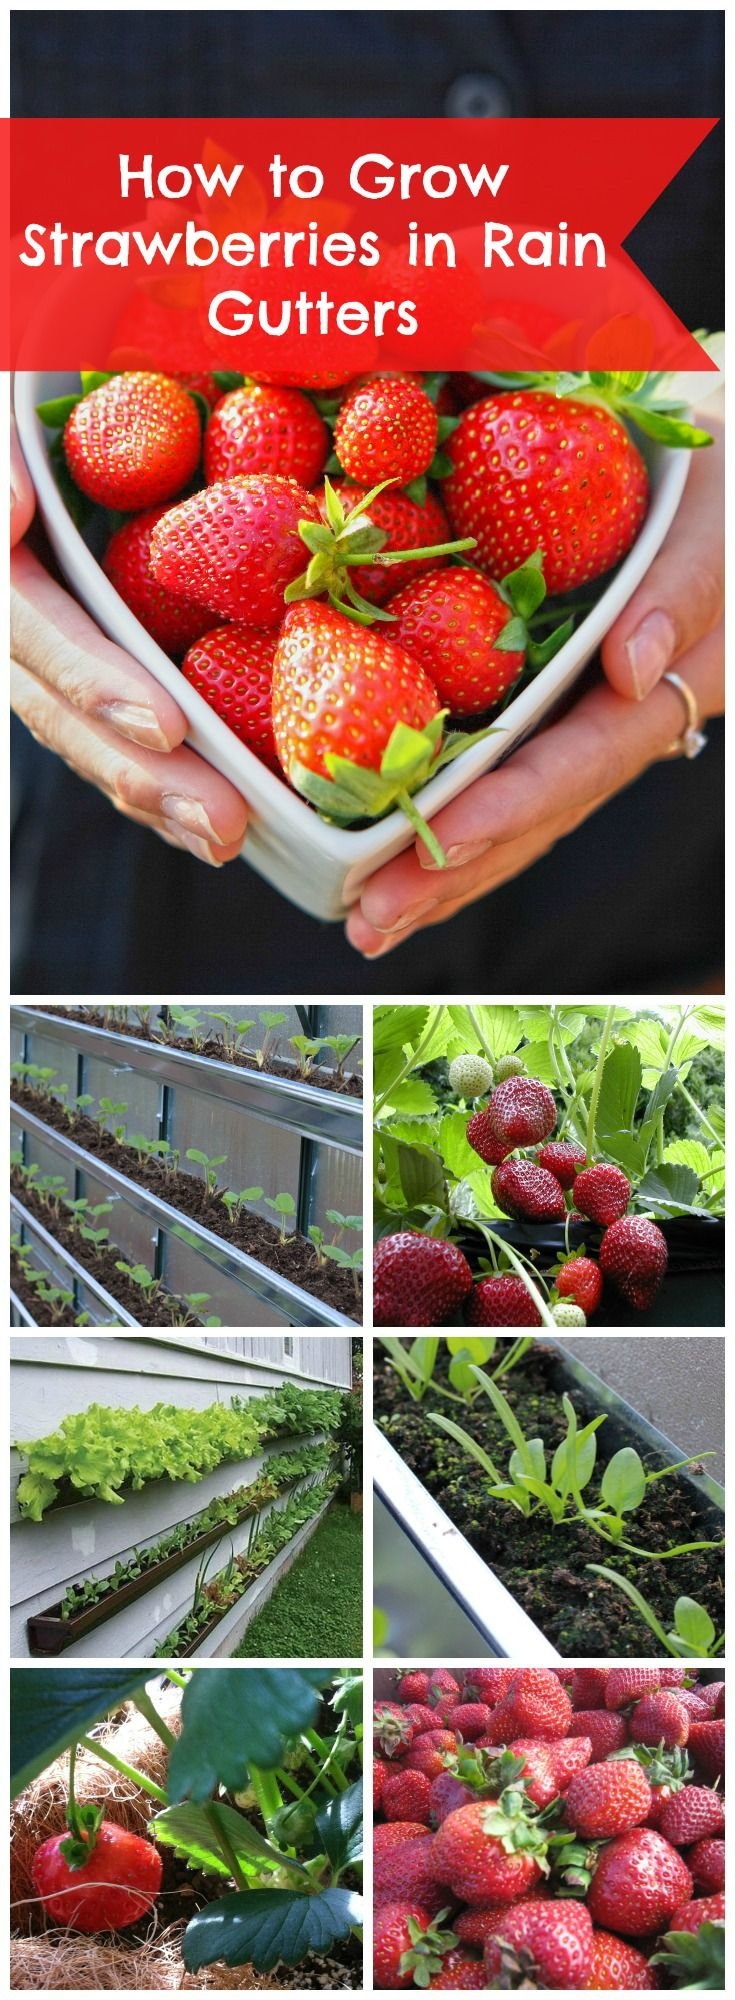 How to Grow Strawberries in Rain Gutters #howto